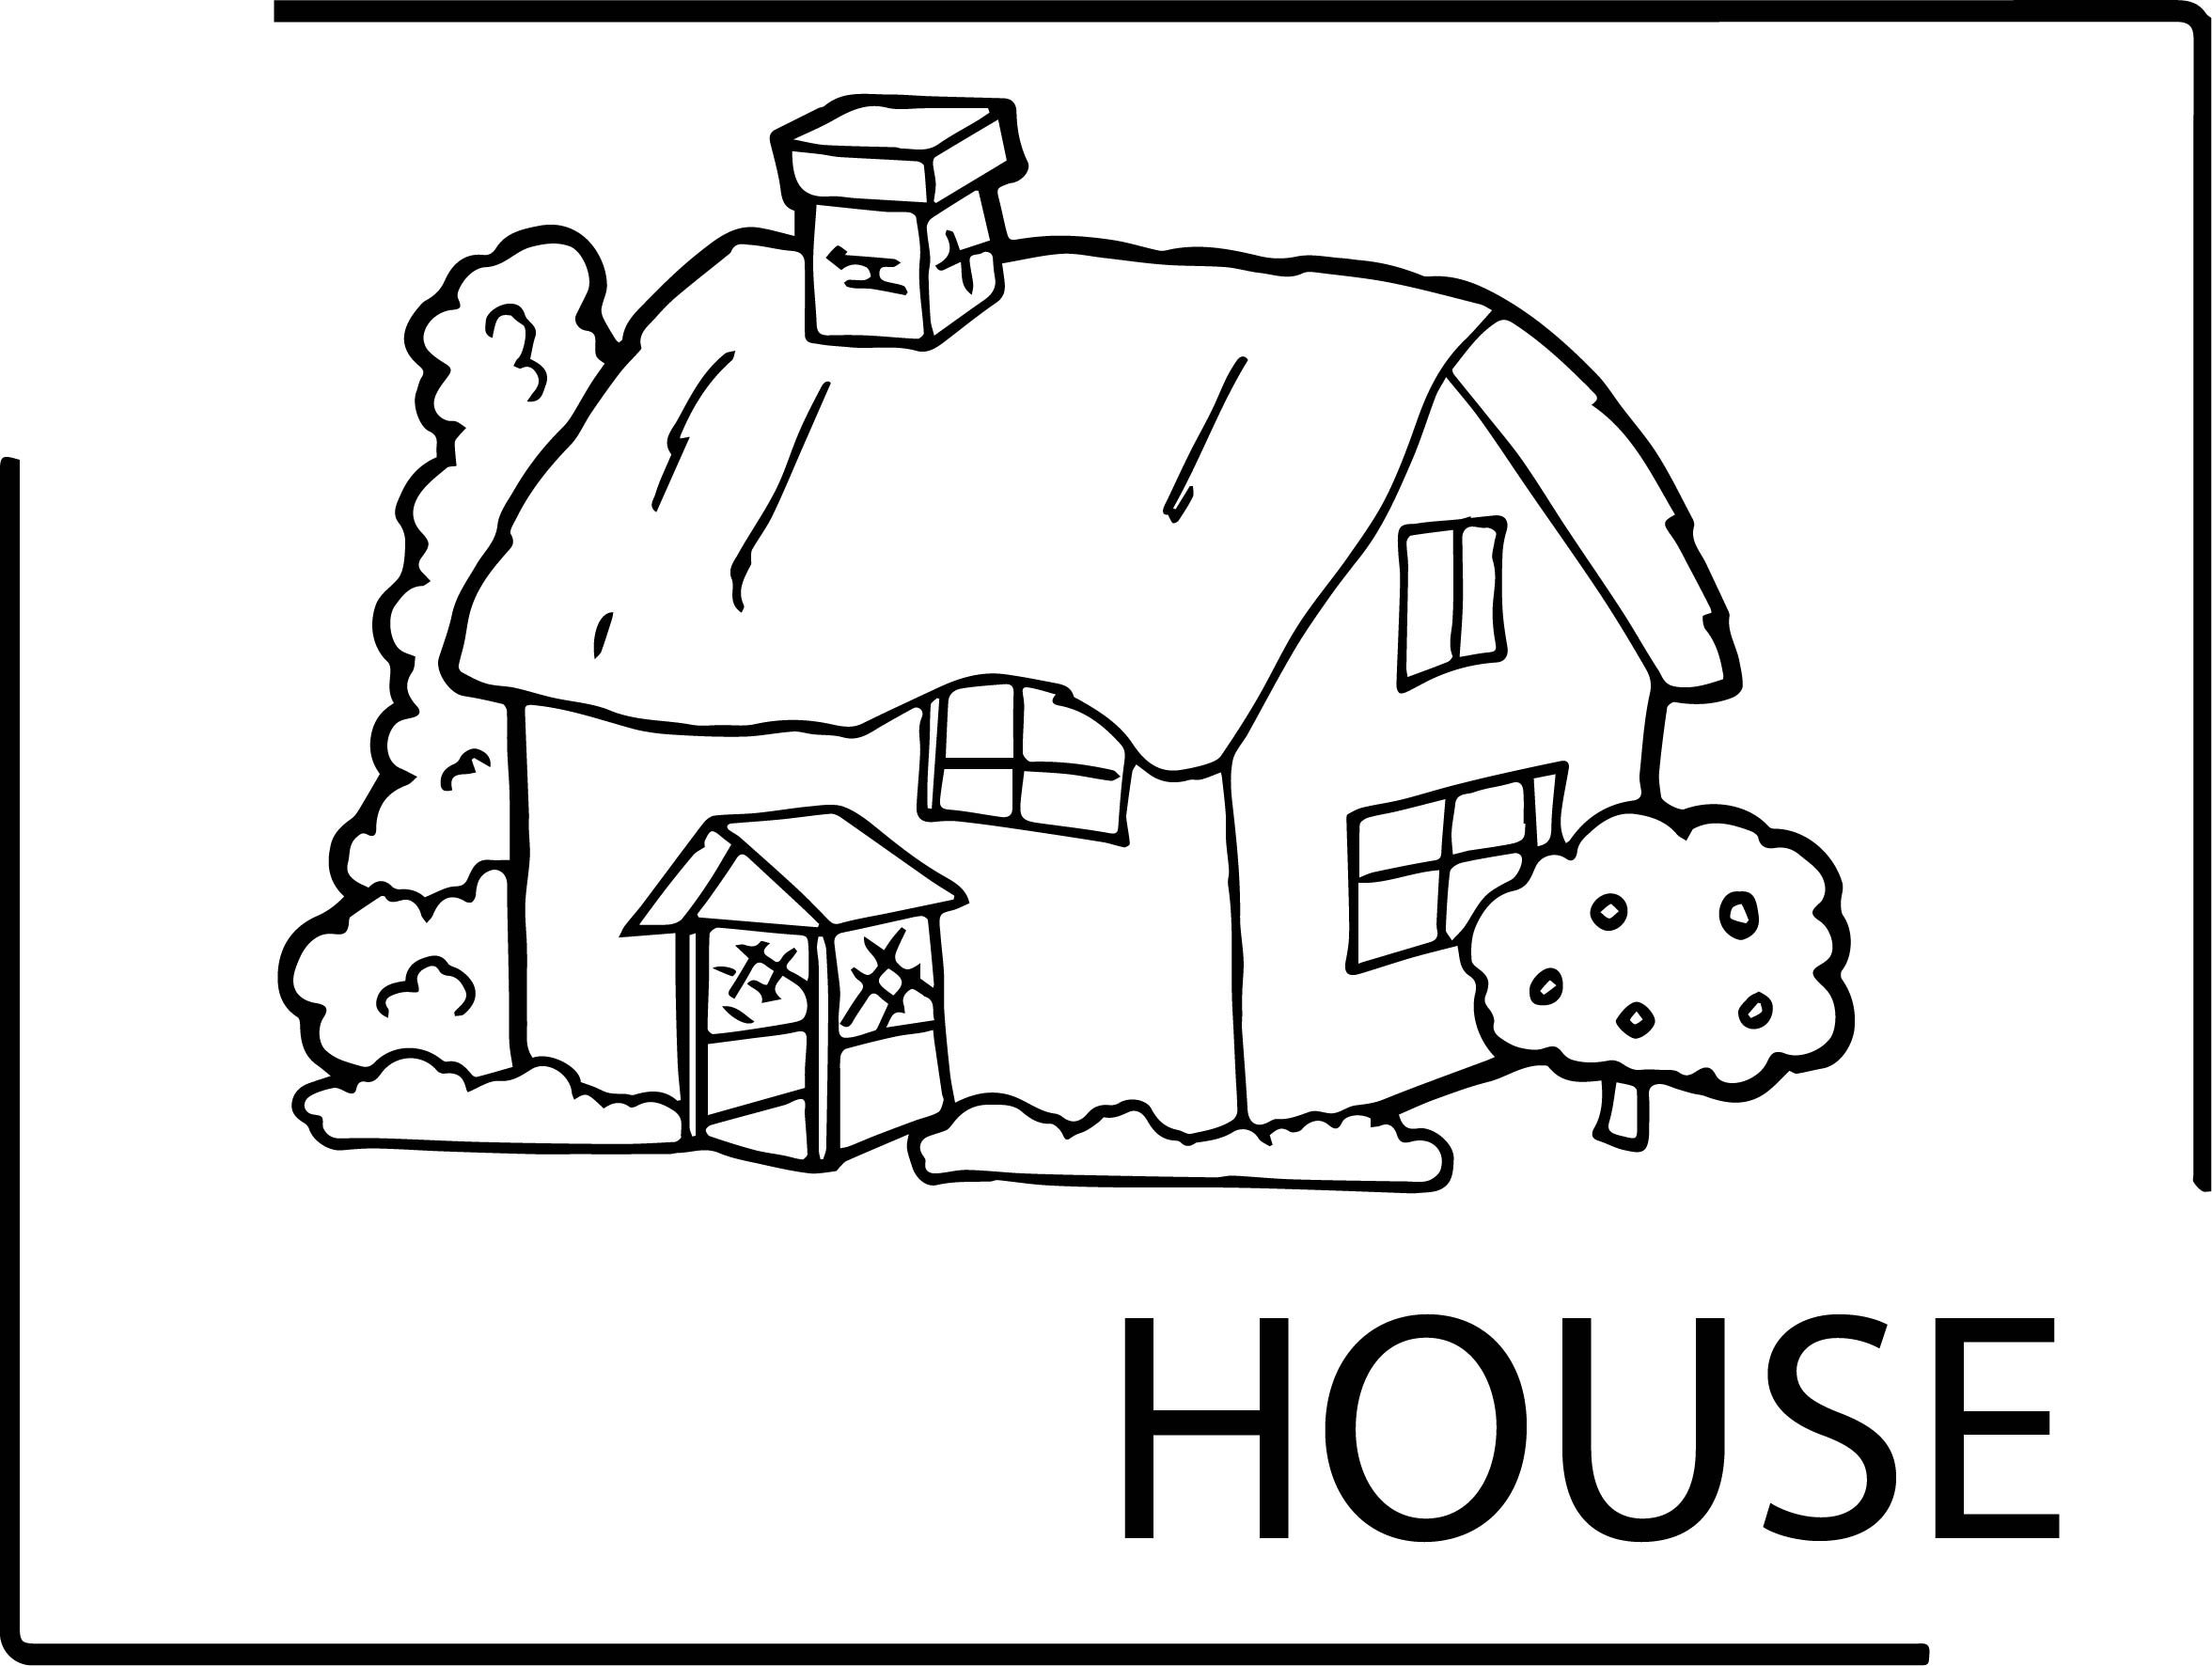 House Text And House Coloring Page Wecoloringpage Com